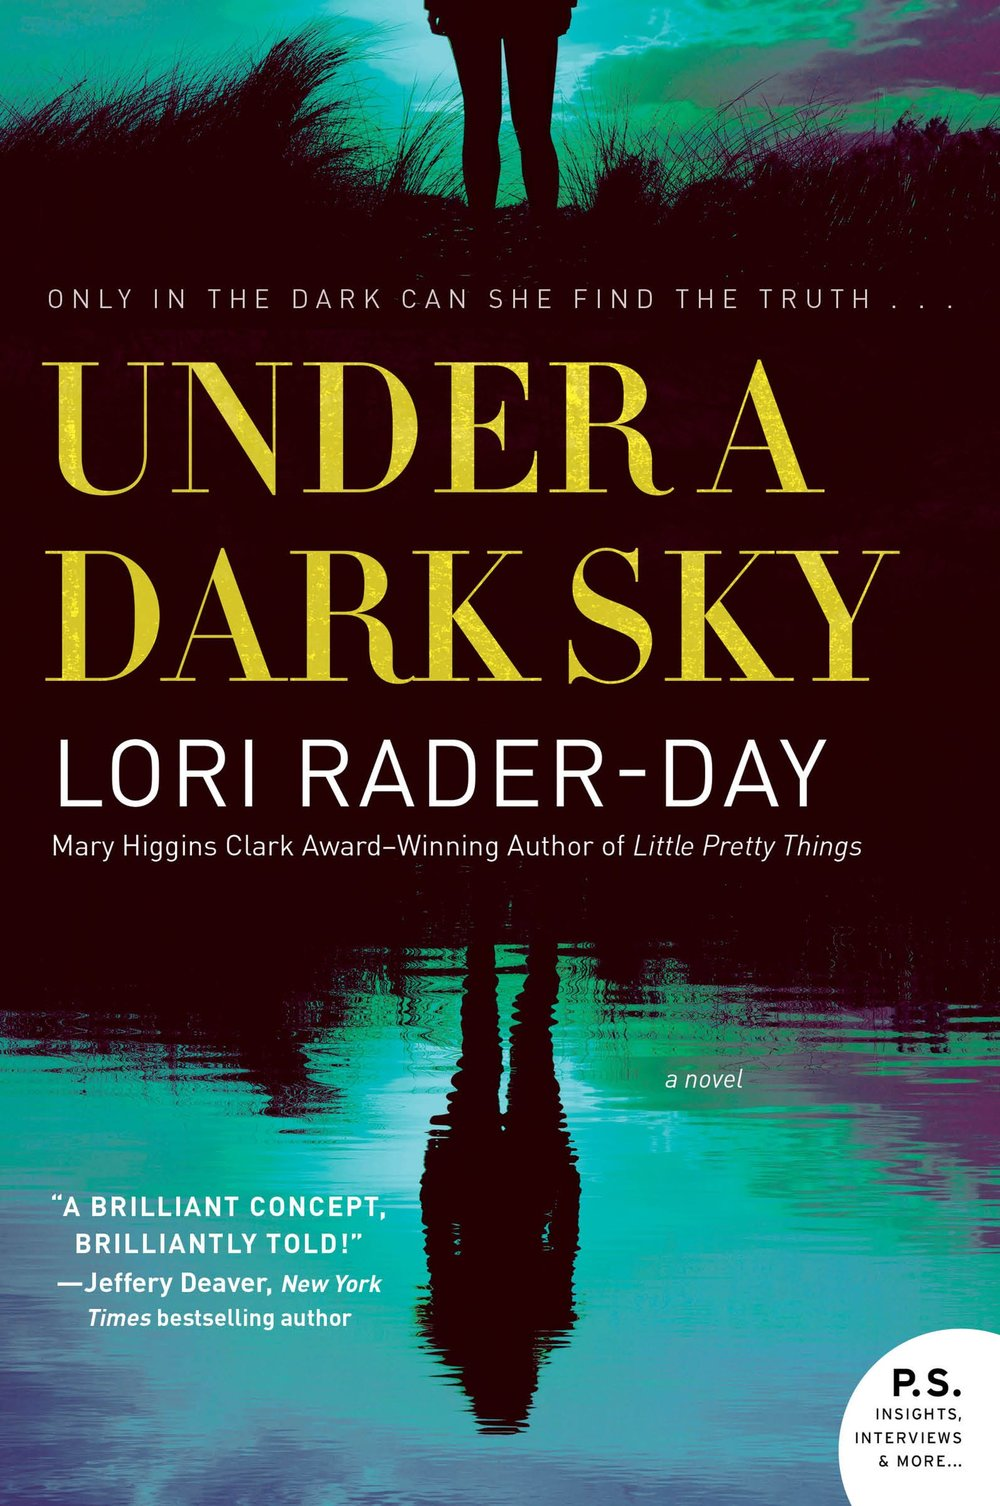 UNDER A DARK SKY by Lori Rader-Day (Cover)